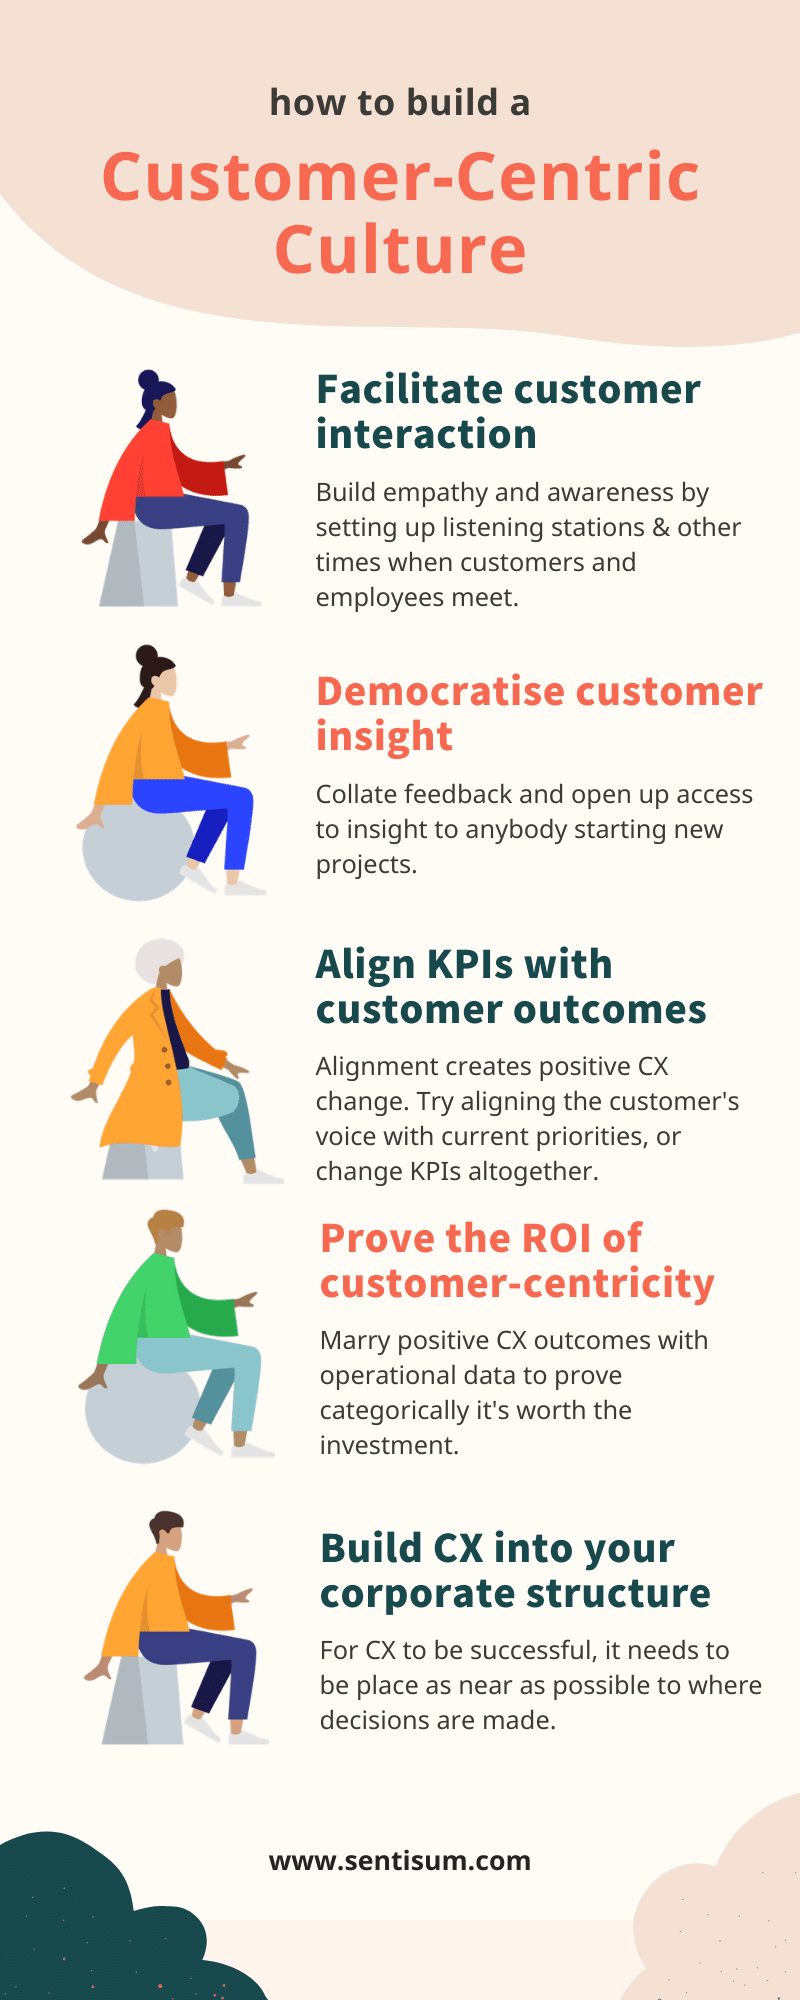 How to build a customer-centric culture